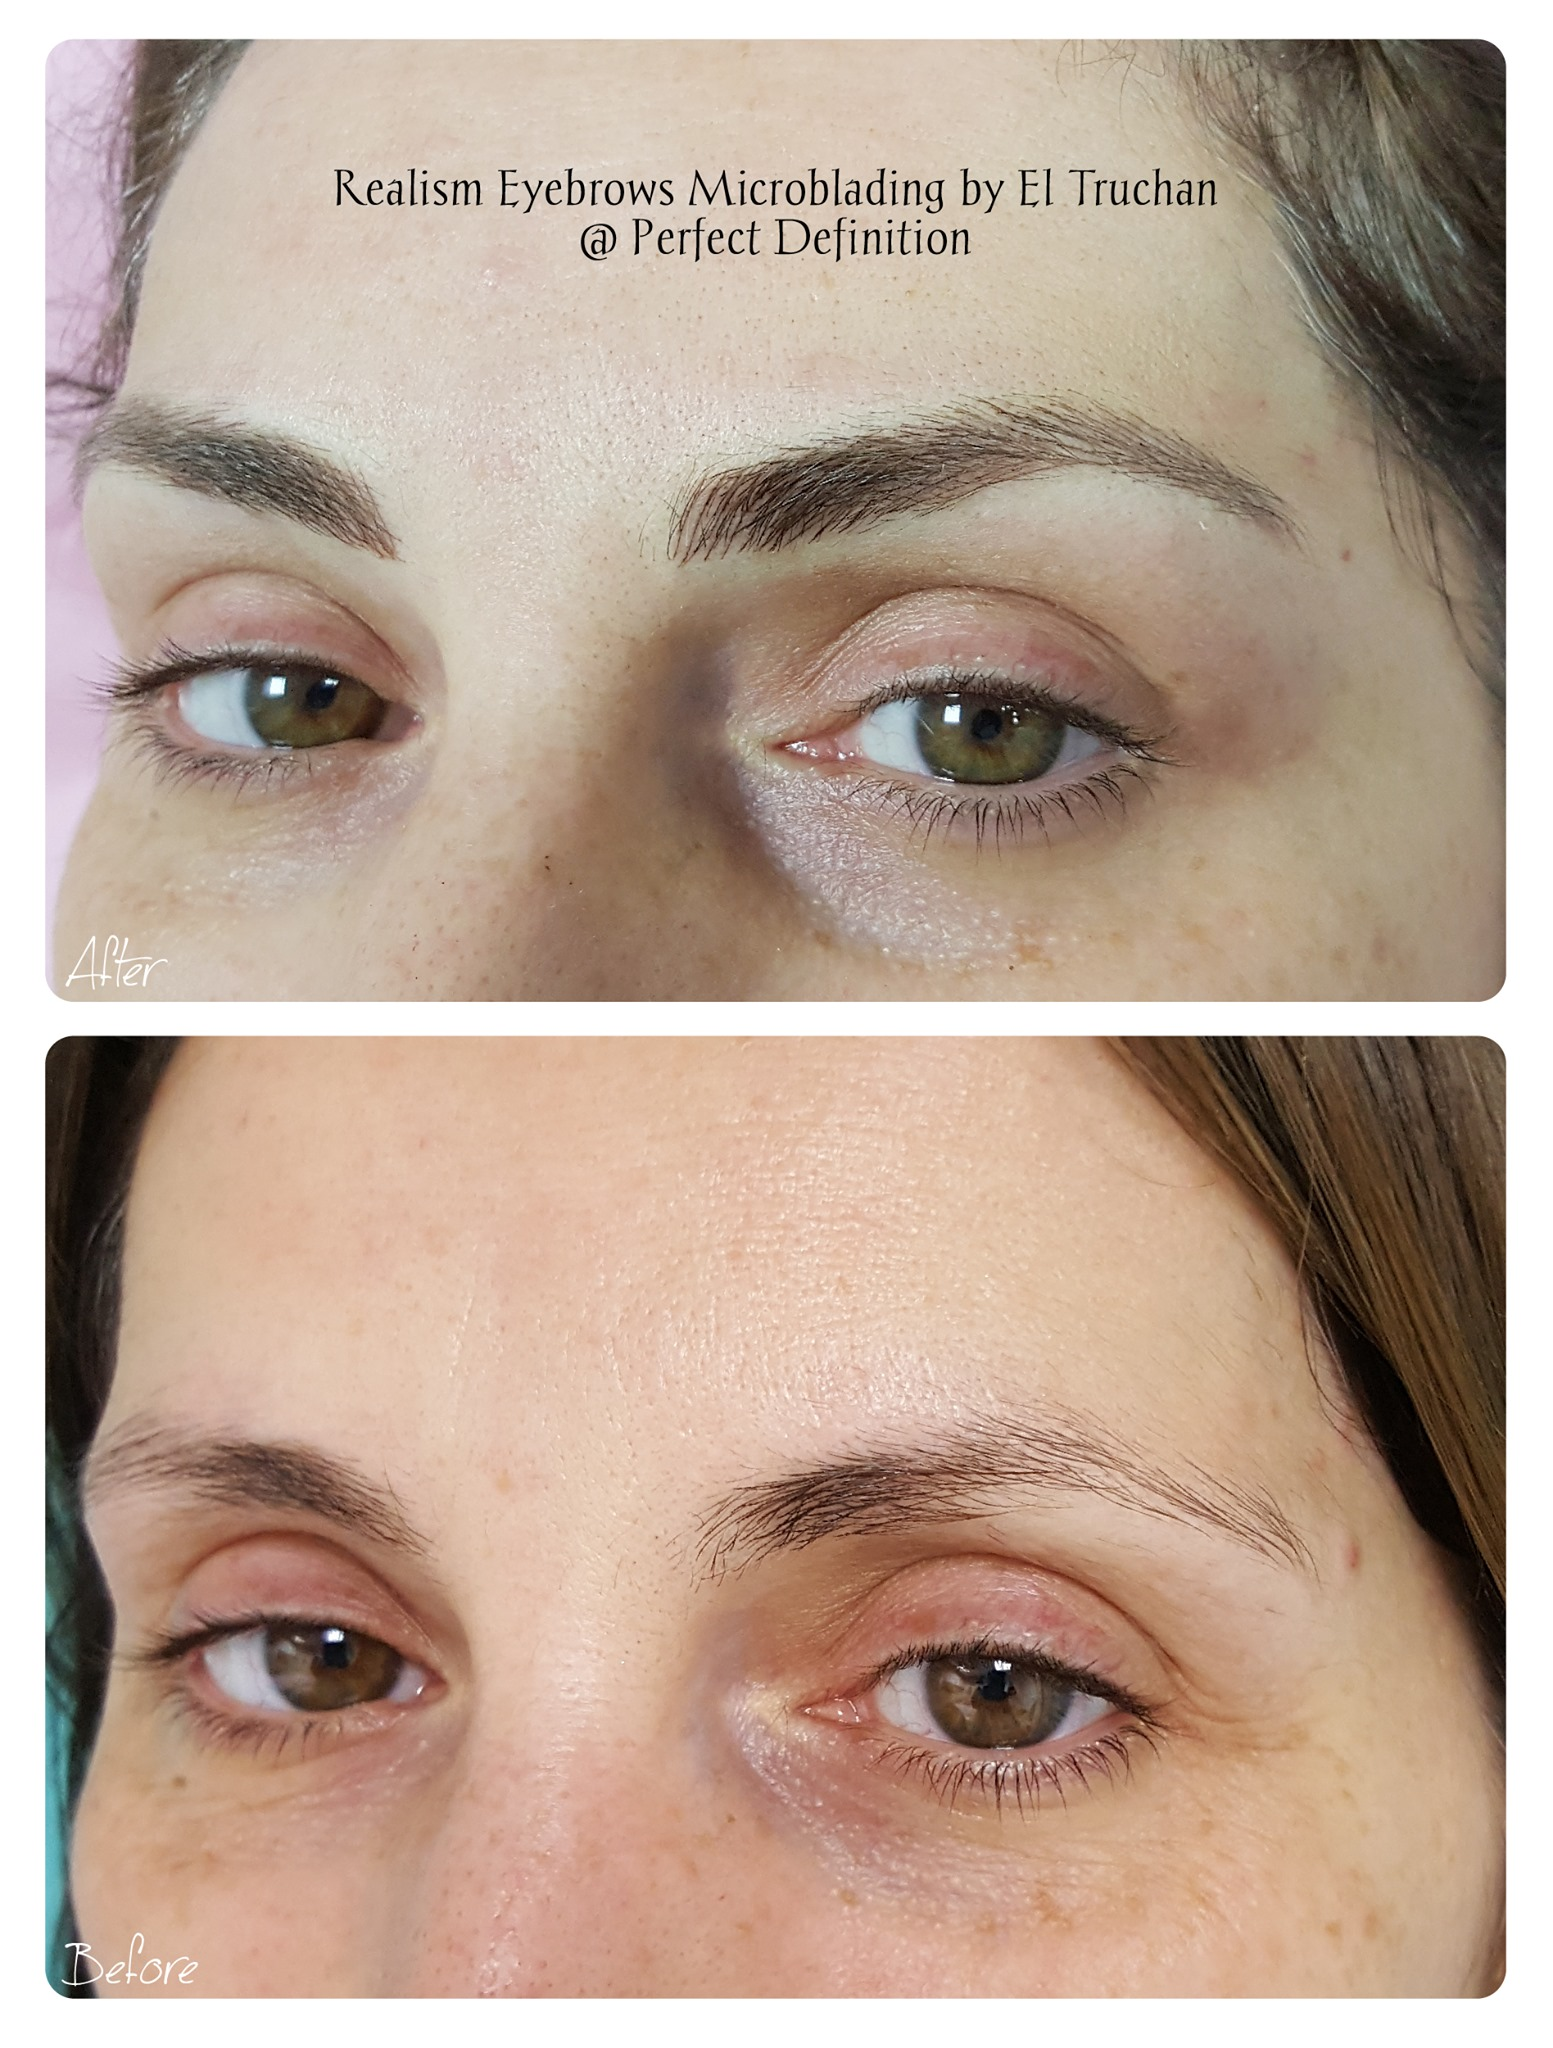 Realism Eyebrows Microblading by El Truc